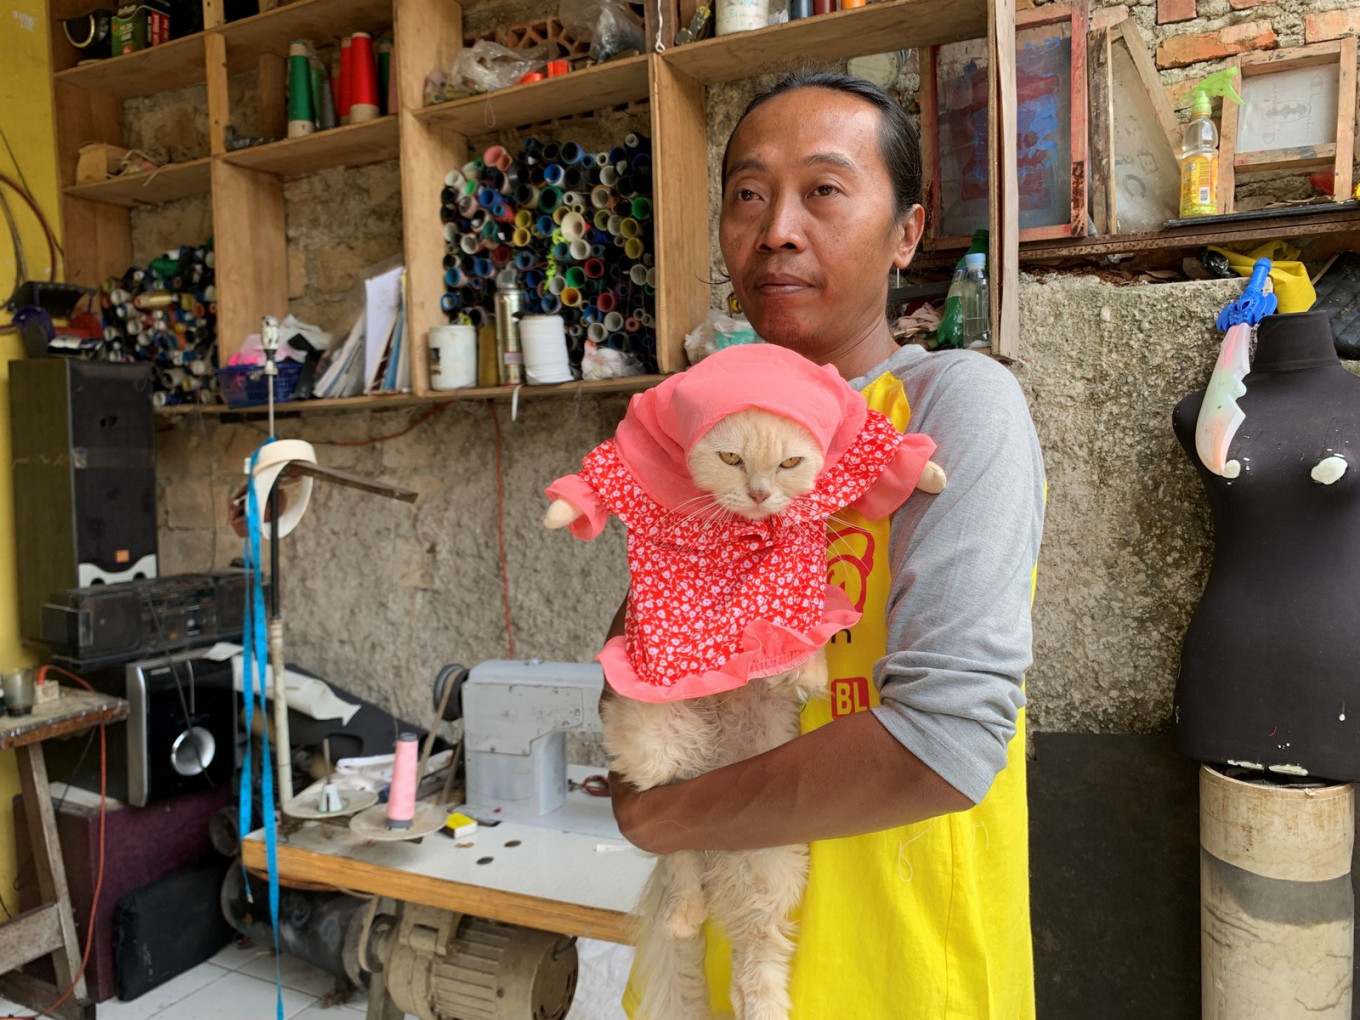 Fredi Lugina Priadi, 39, holds his cat wearing a cosplay costume in Bogor, on the outskirts of Jakarta, Indonesia, November 26, 2020. Reuters/Yuddy Cahya Budiman